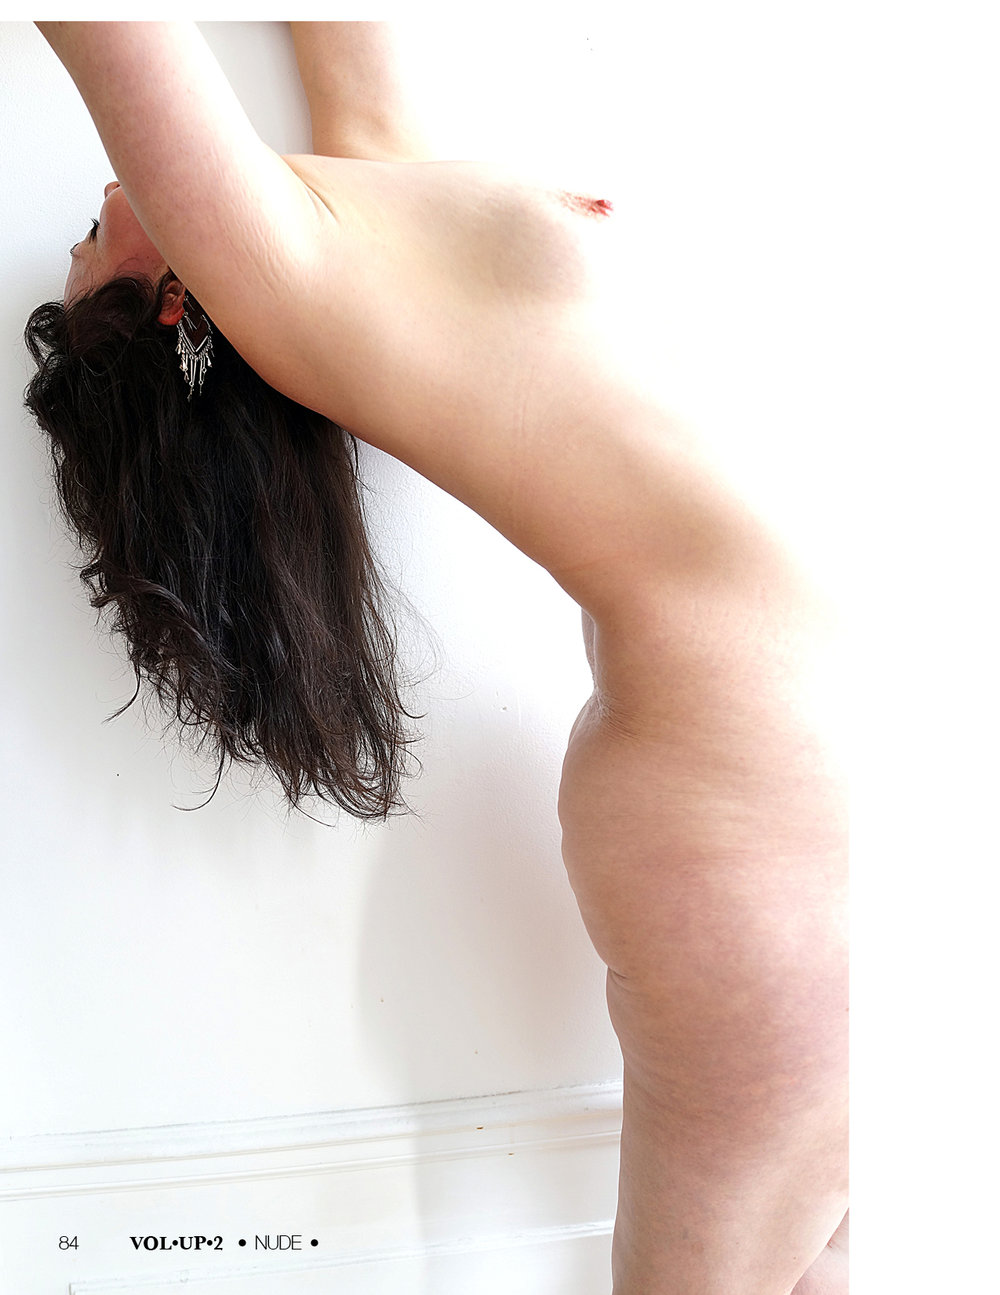 volup2-nude-whole-FINAL84.jpg